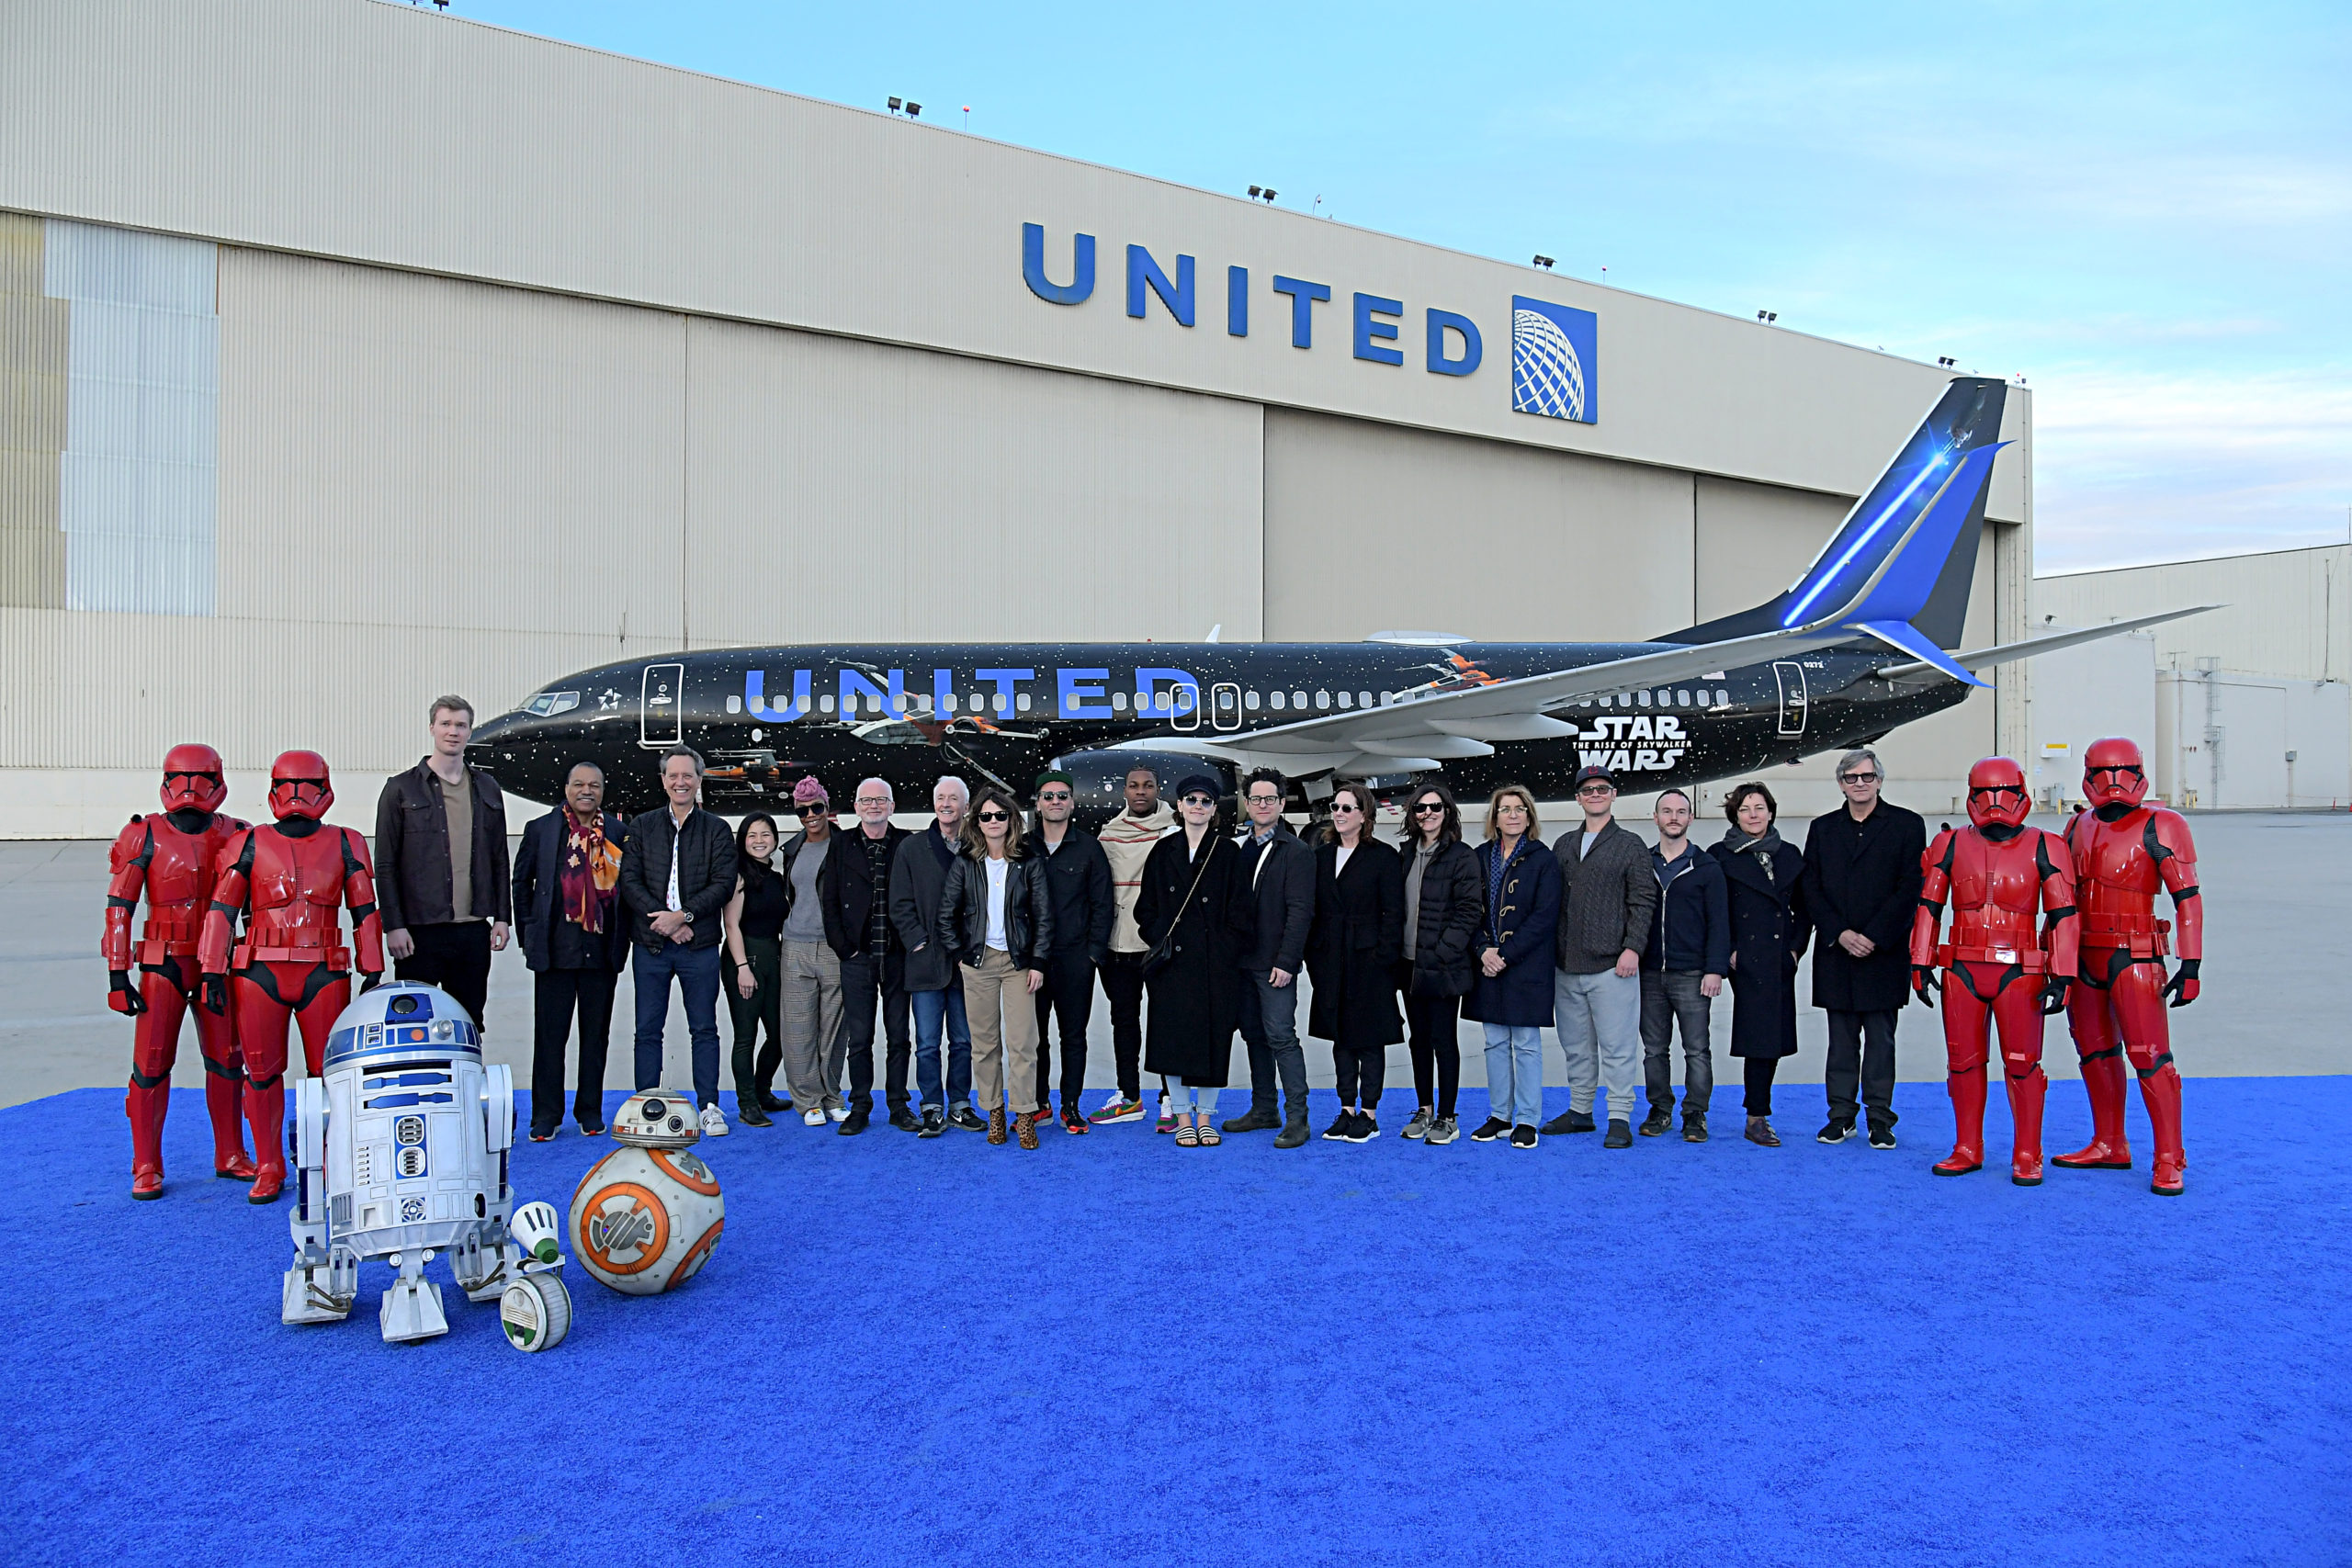 The Cast Of Star Wars The Rise Of Skywalker Attend United Airline S Star Wars Aircraft Launch Beautifulballad